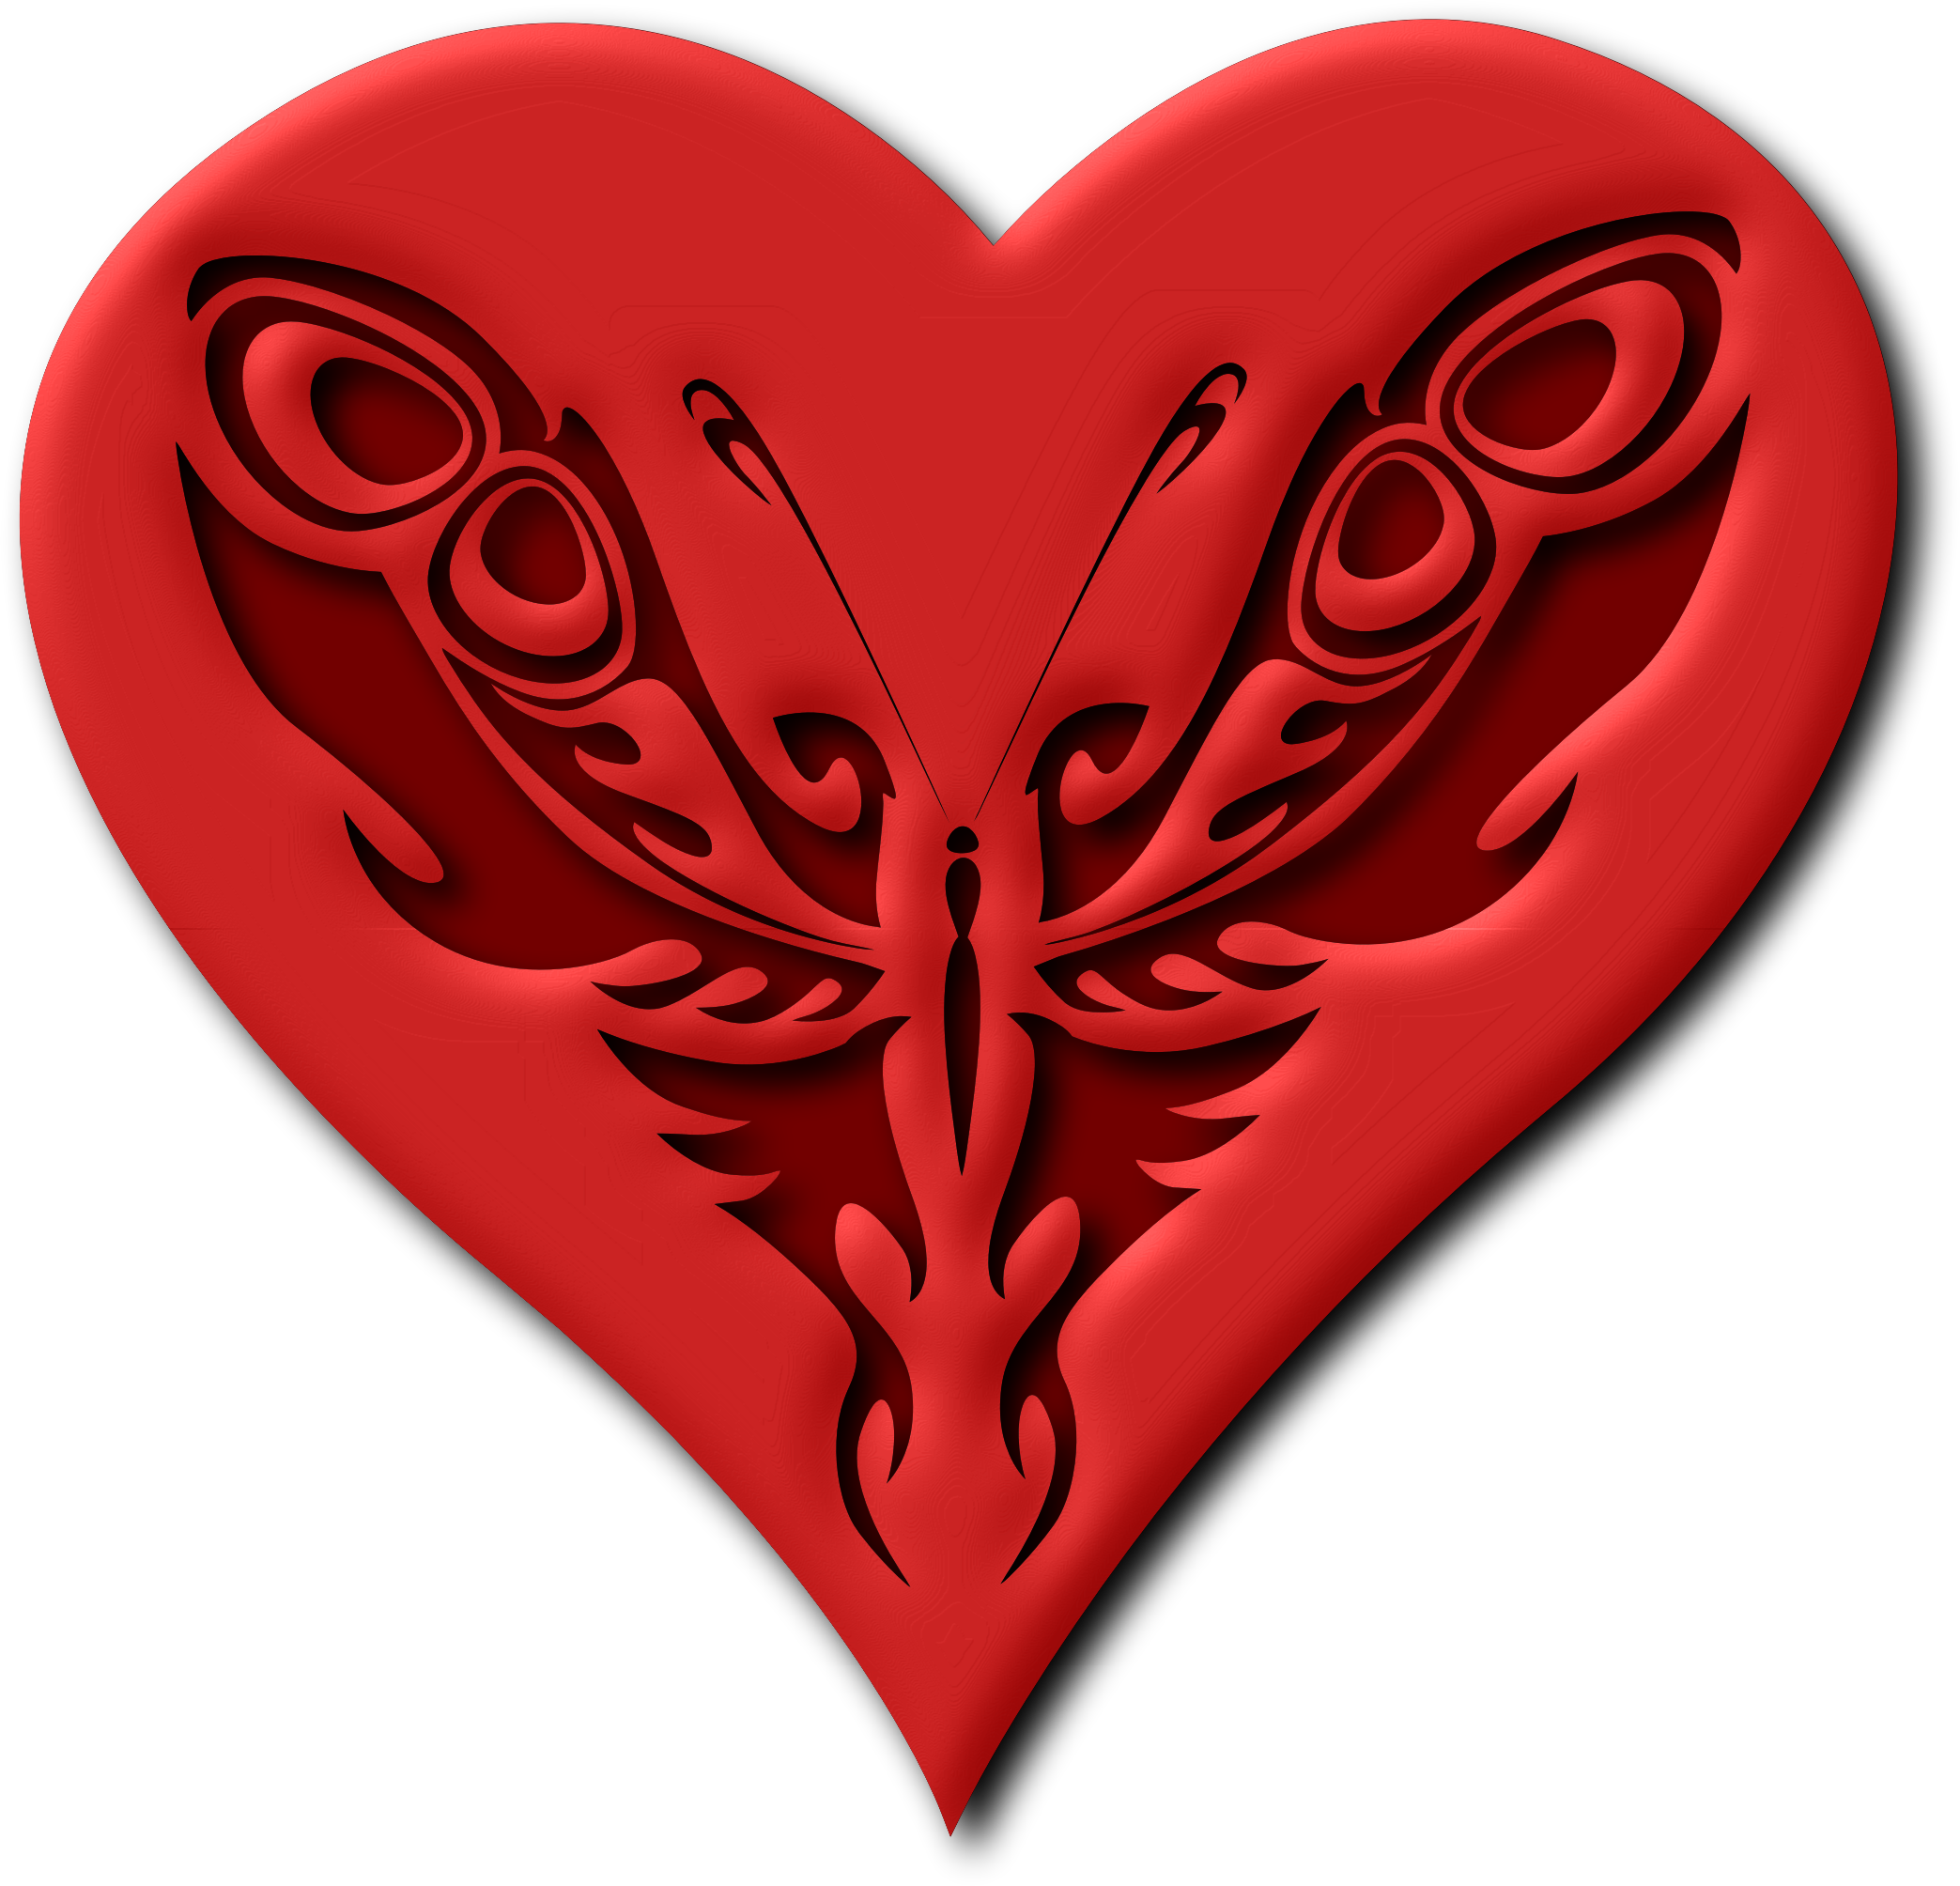 Heart butterfly clipart clipart freeuse stock Clipart - Butterfly heart (version 2) clipart freeuse stock